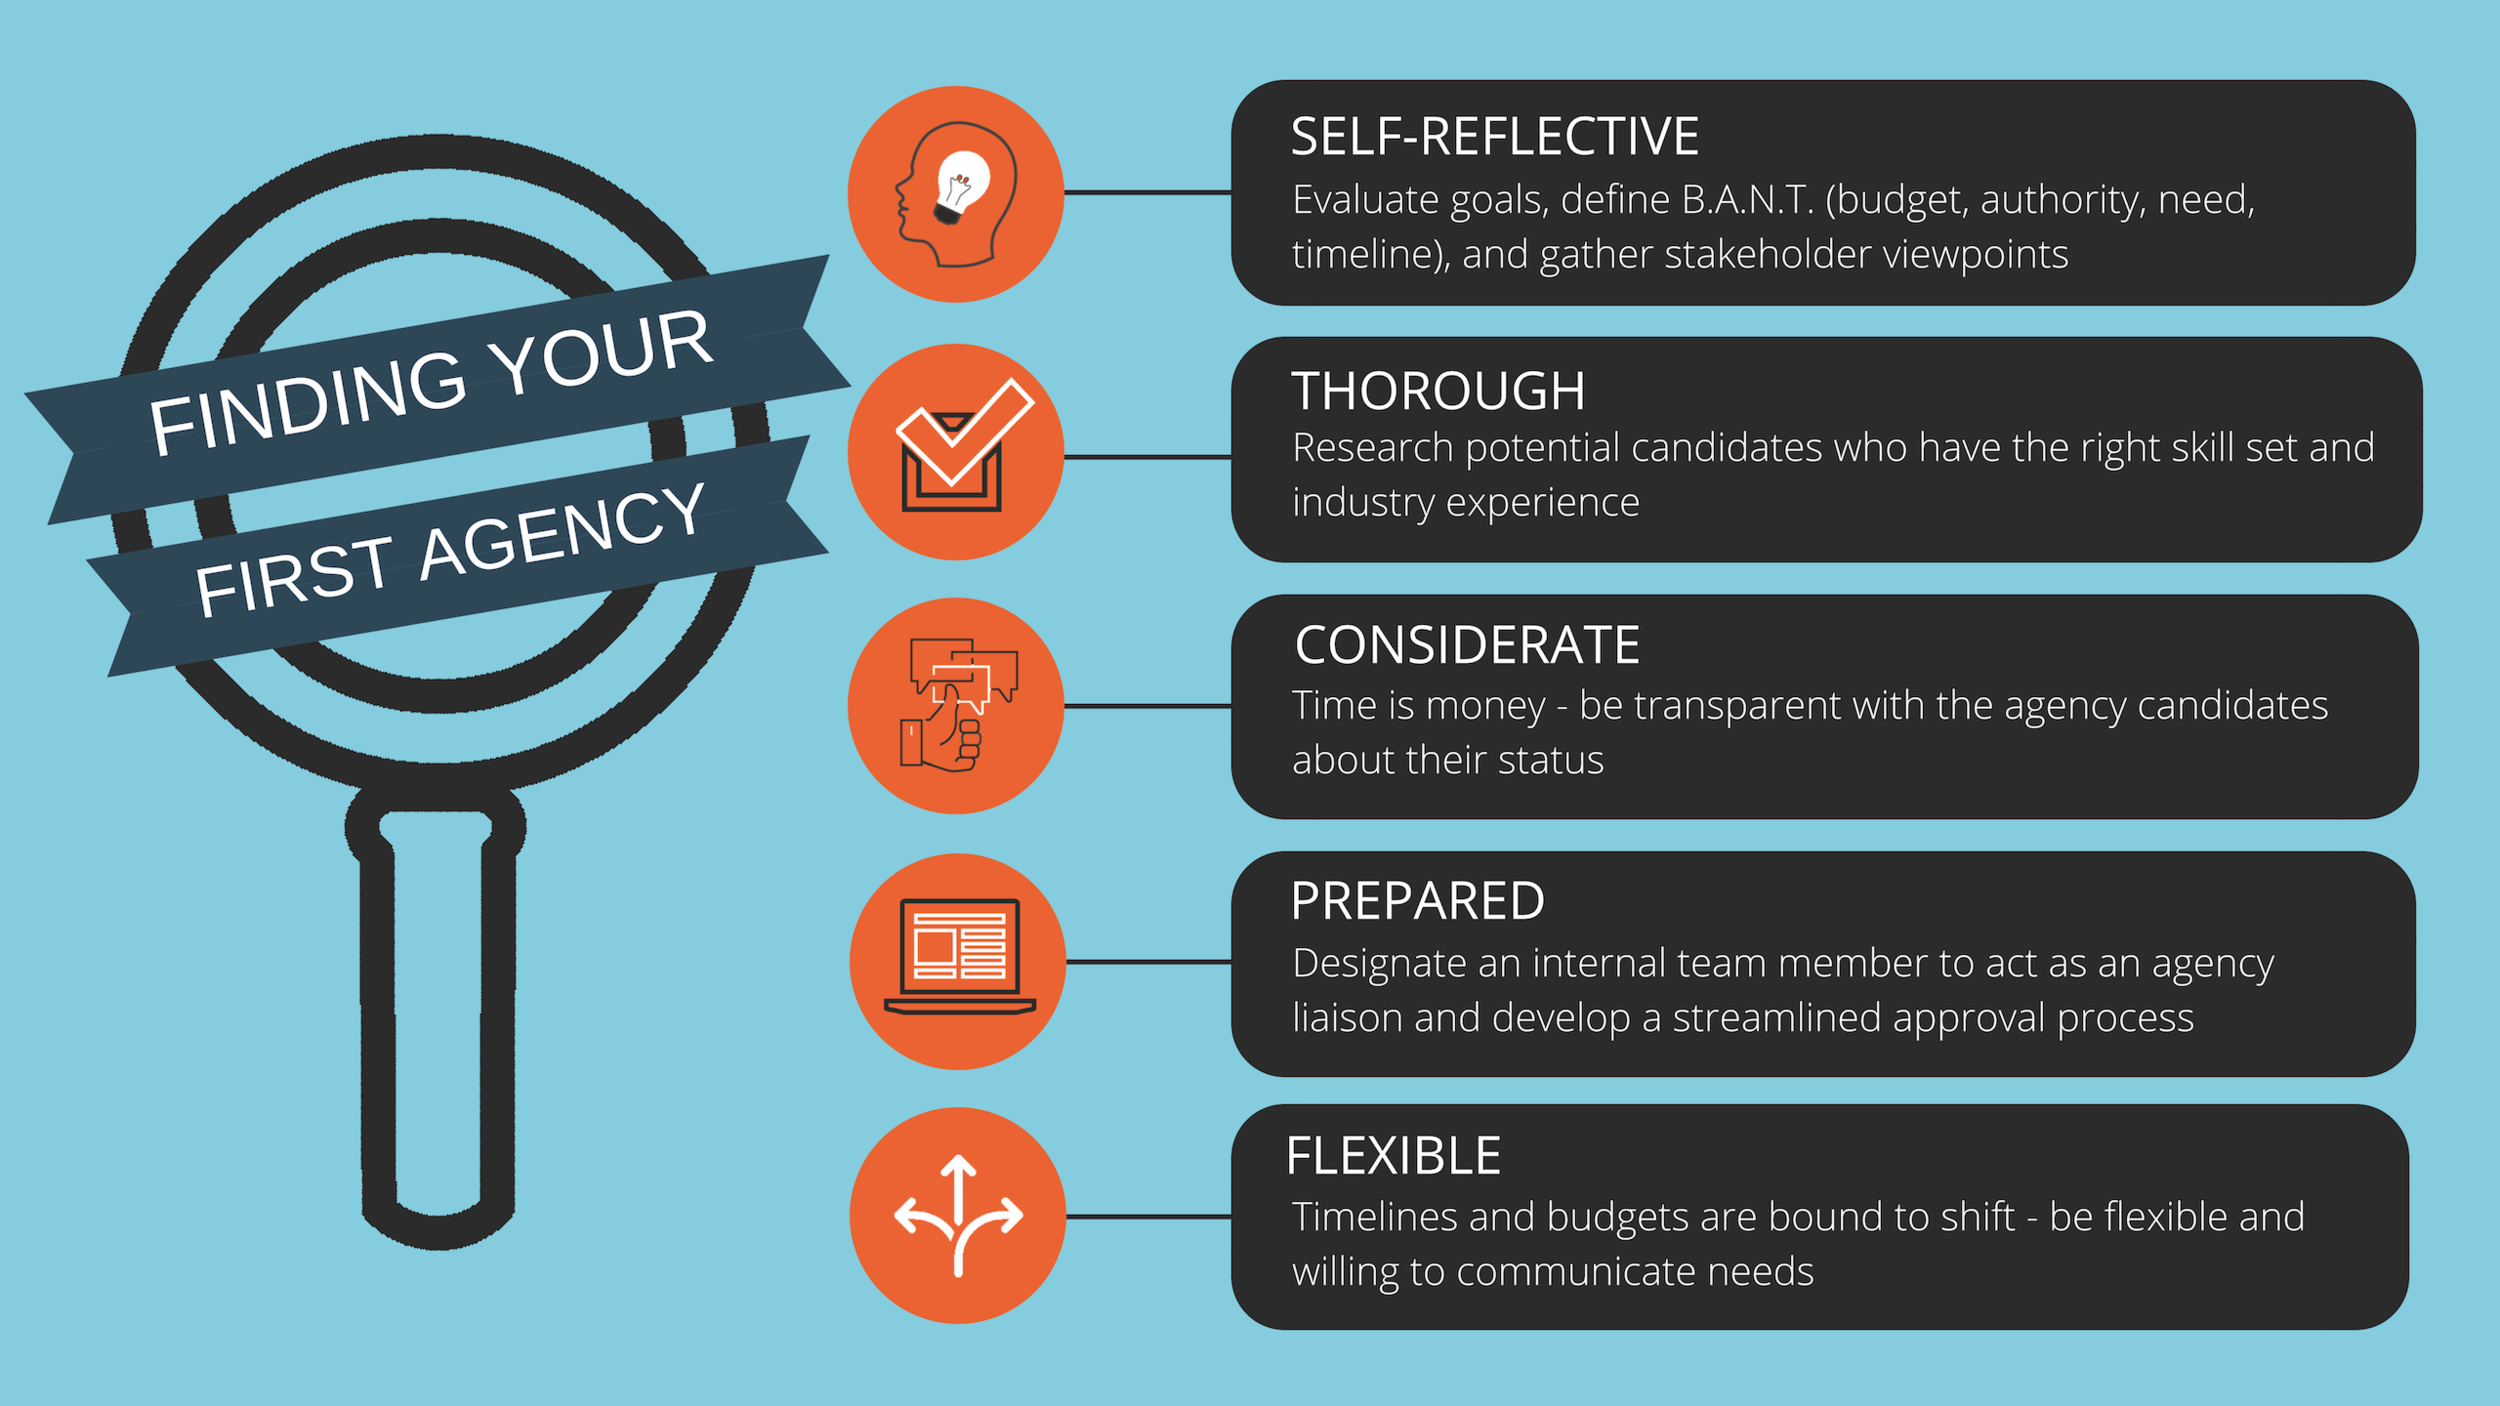 Finding and selecting your first marketing agency can be difficult. Make sure to keep these tips in mind when going through the process.